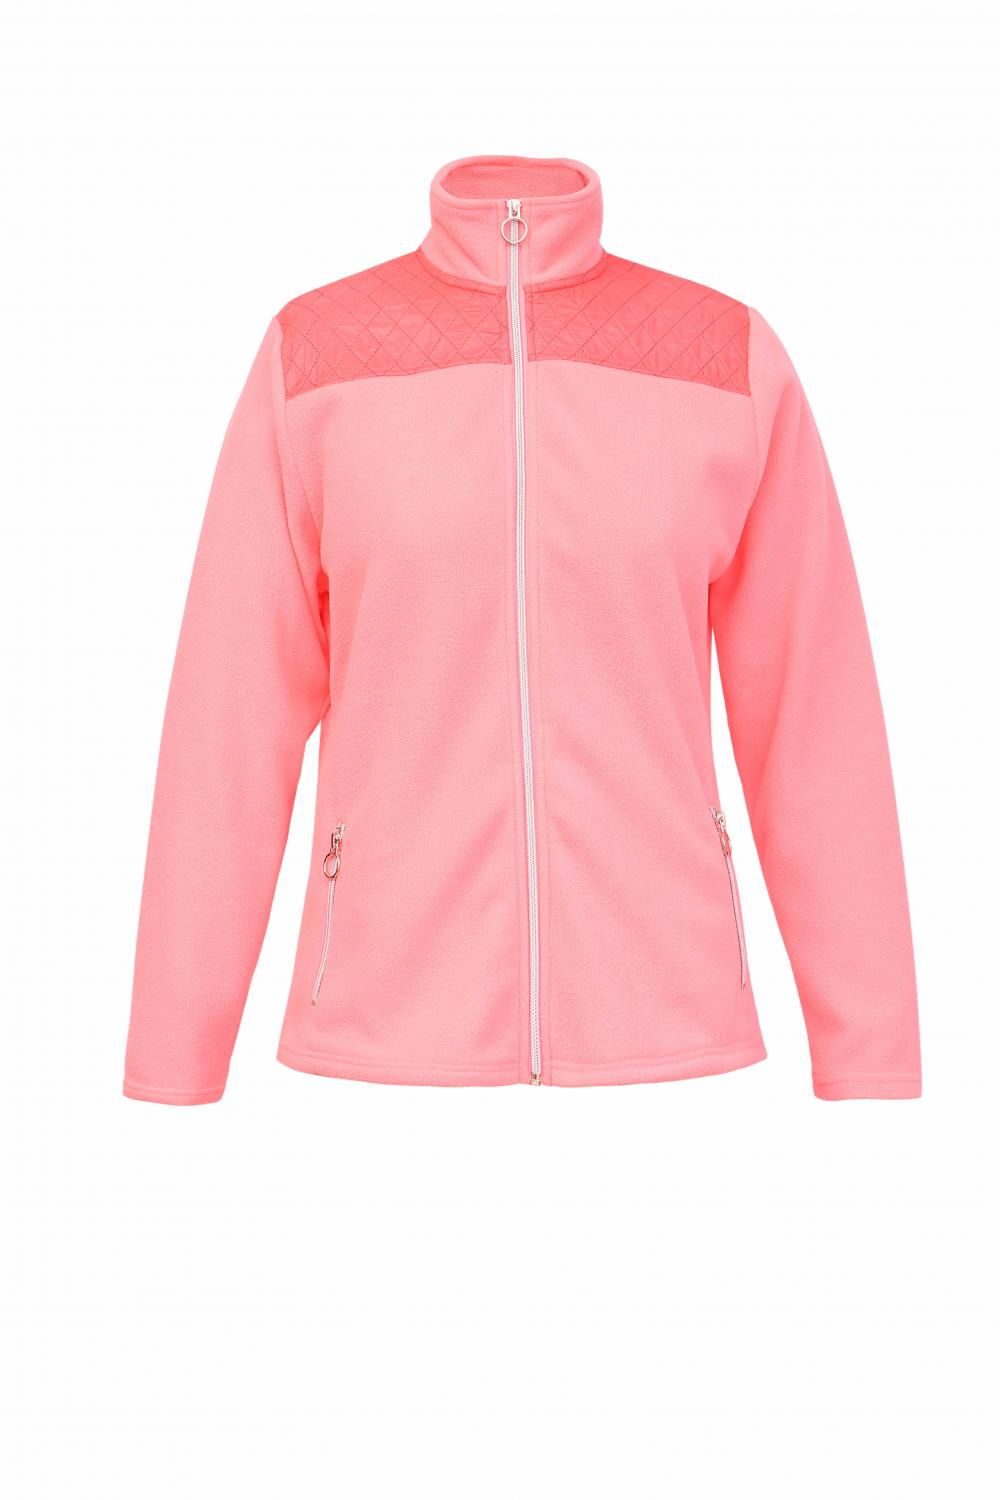 Ladies polar fleece jackets